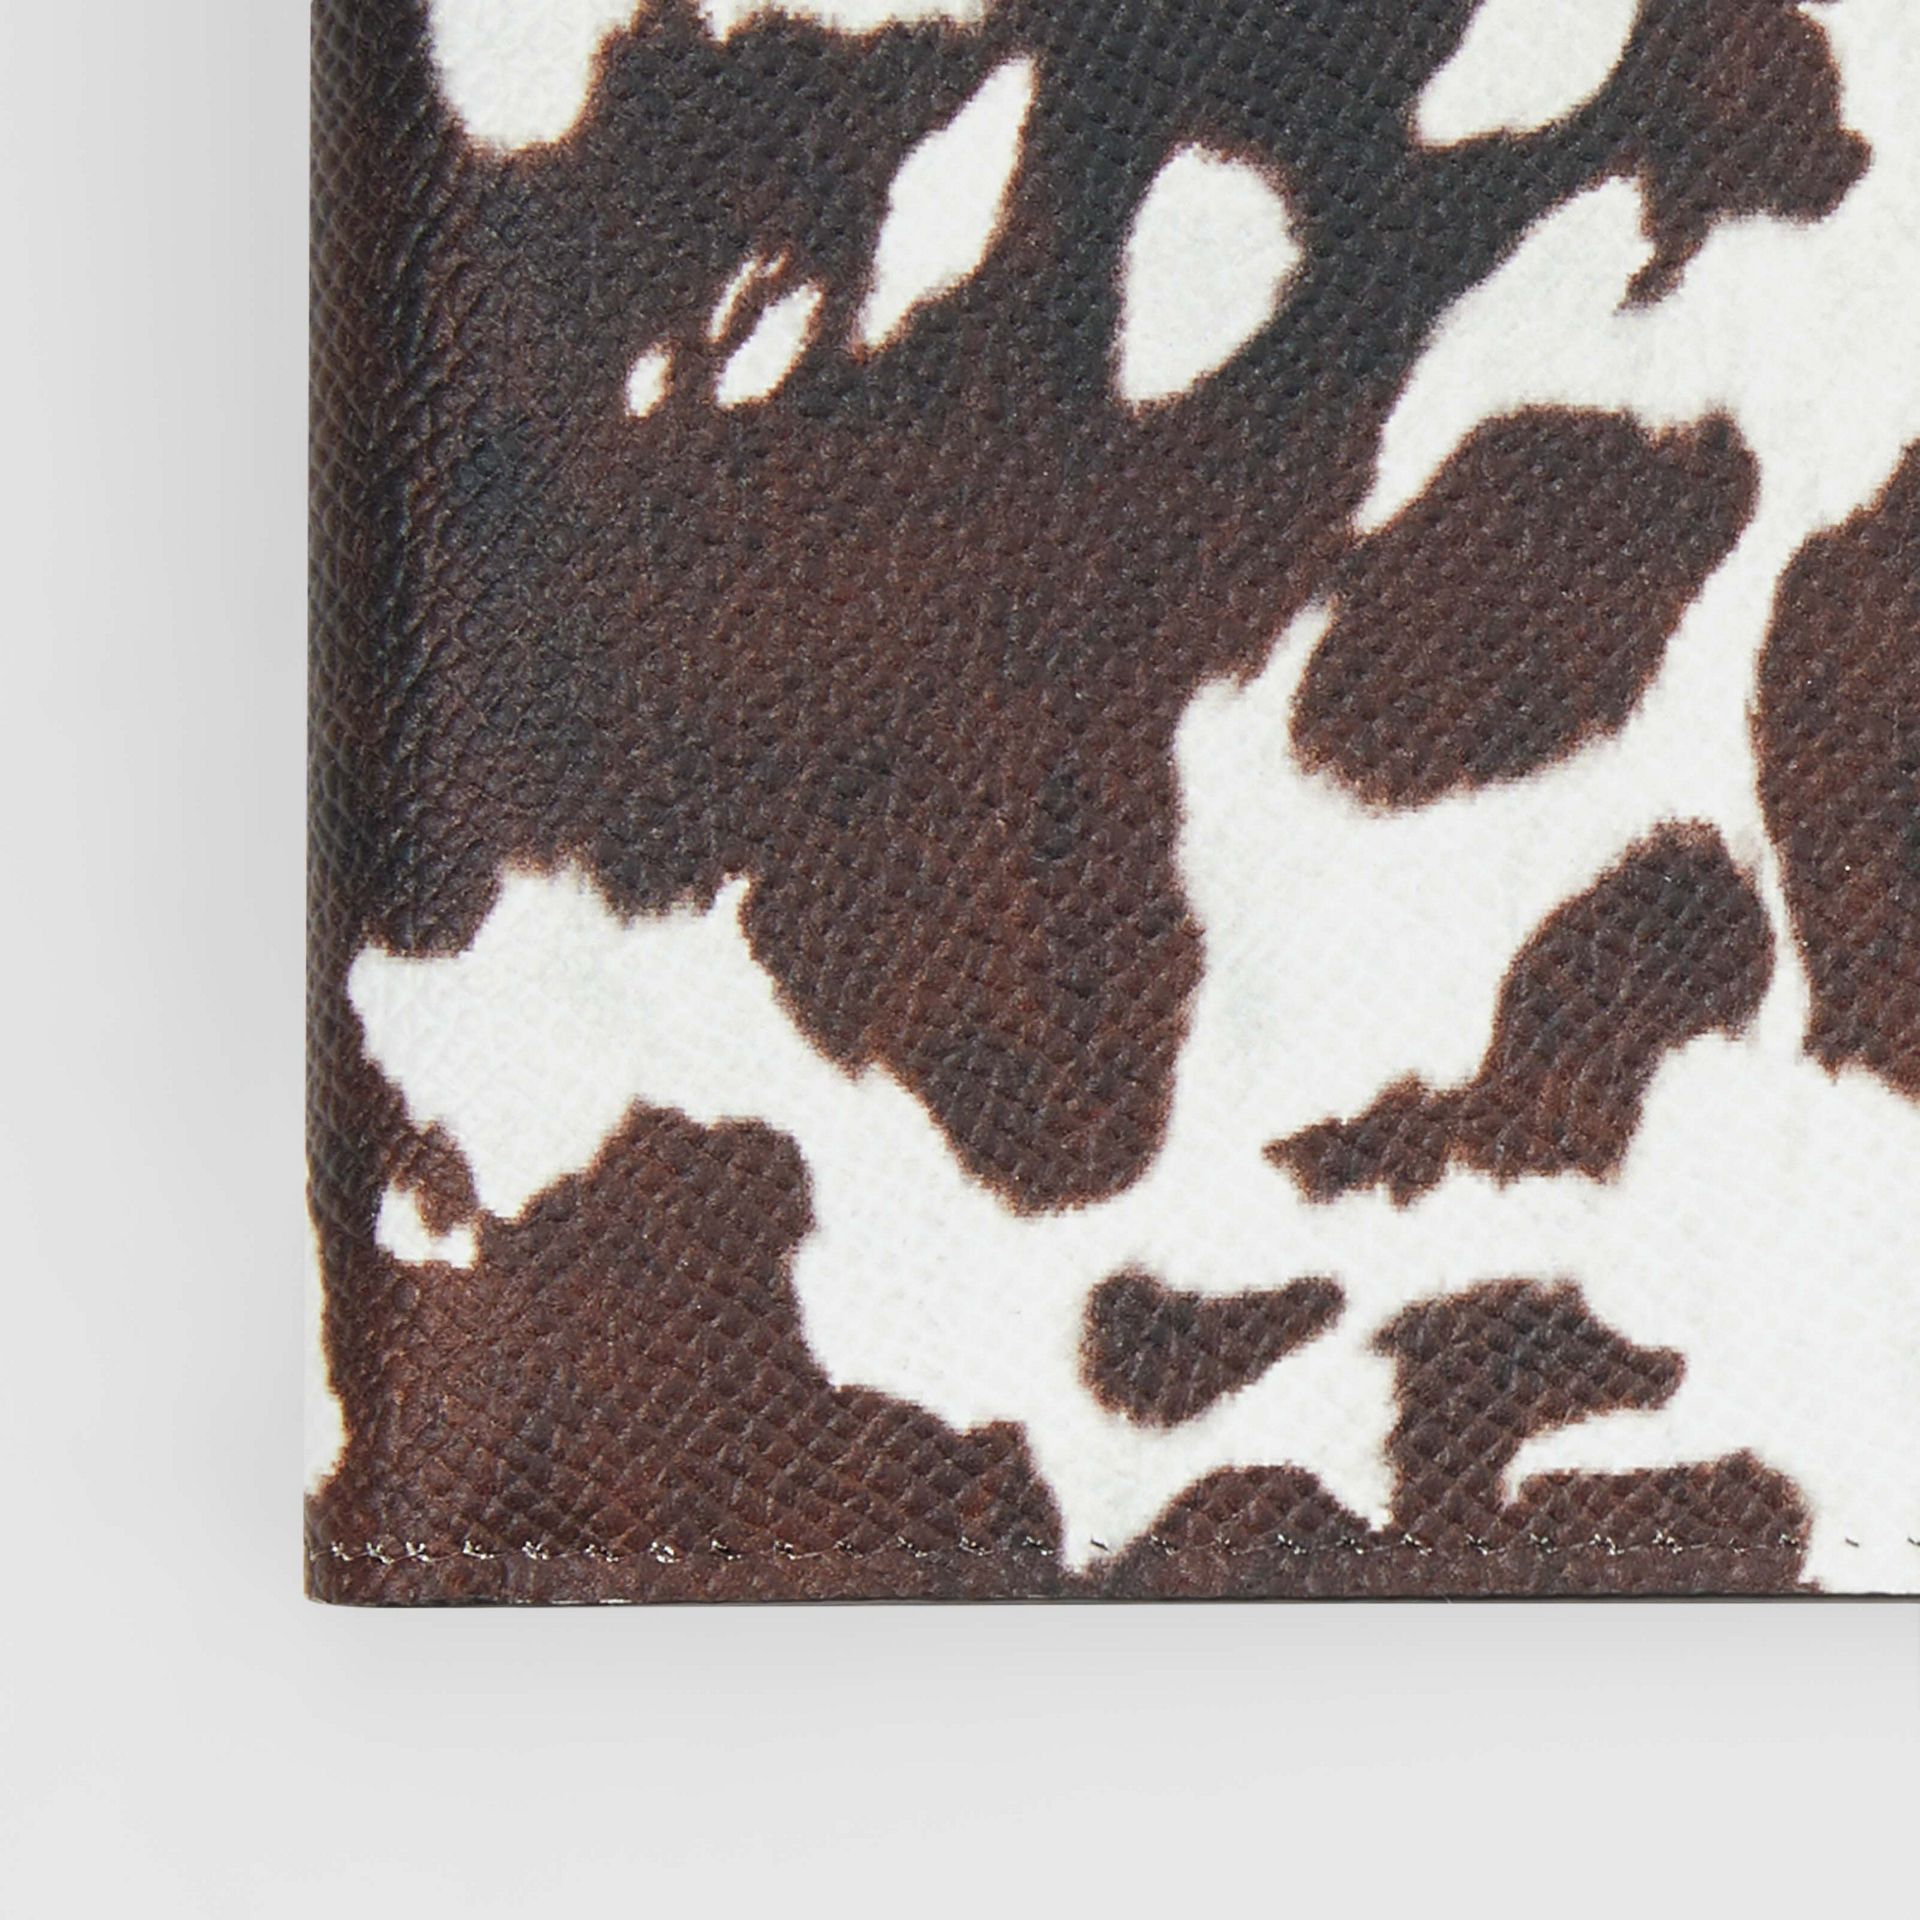 Cow Print Leather International Bifold Wallet in Black/white - Men | Burberry - gallery image 1